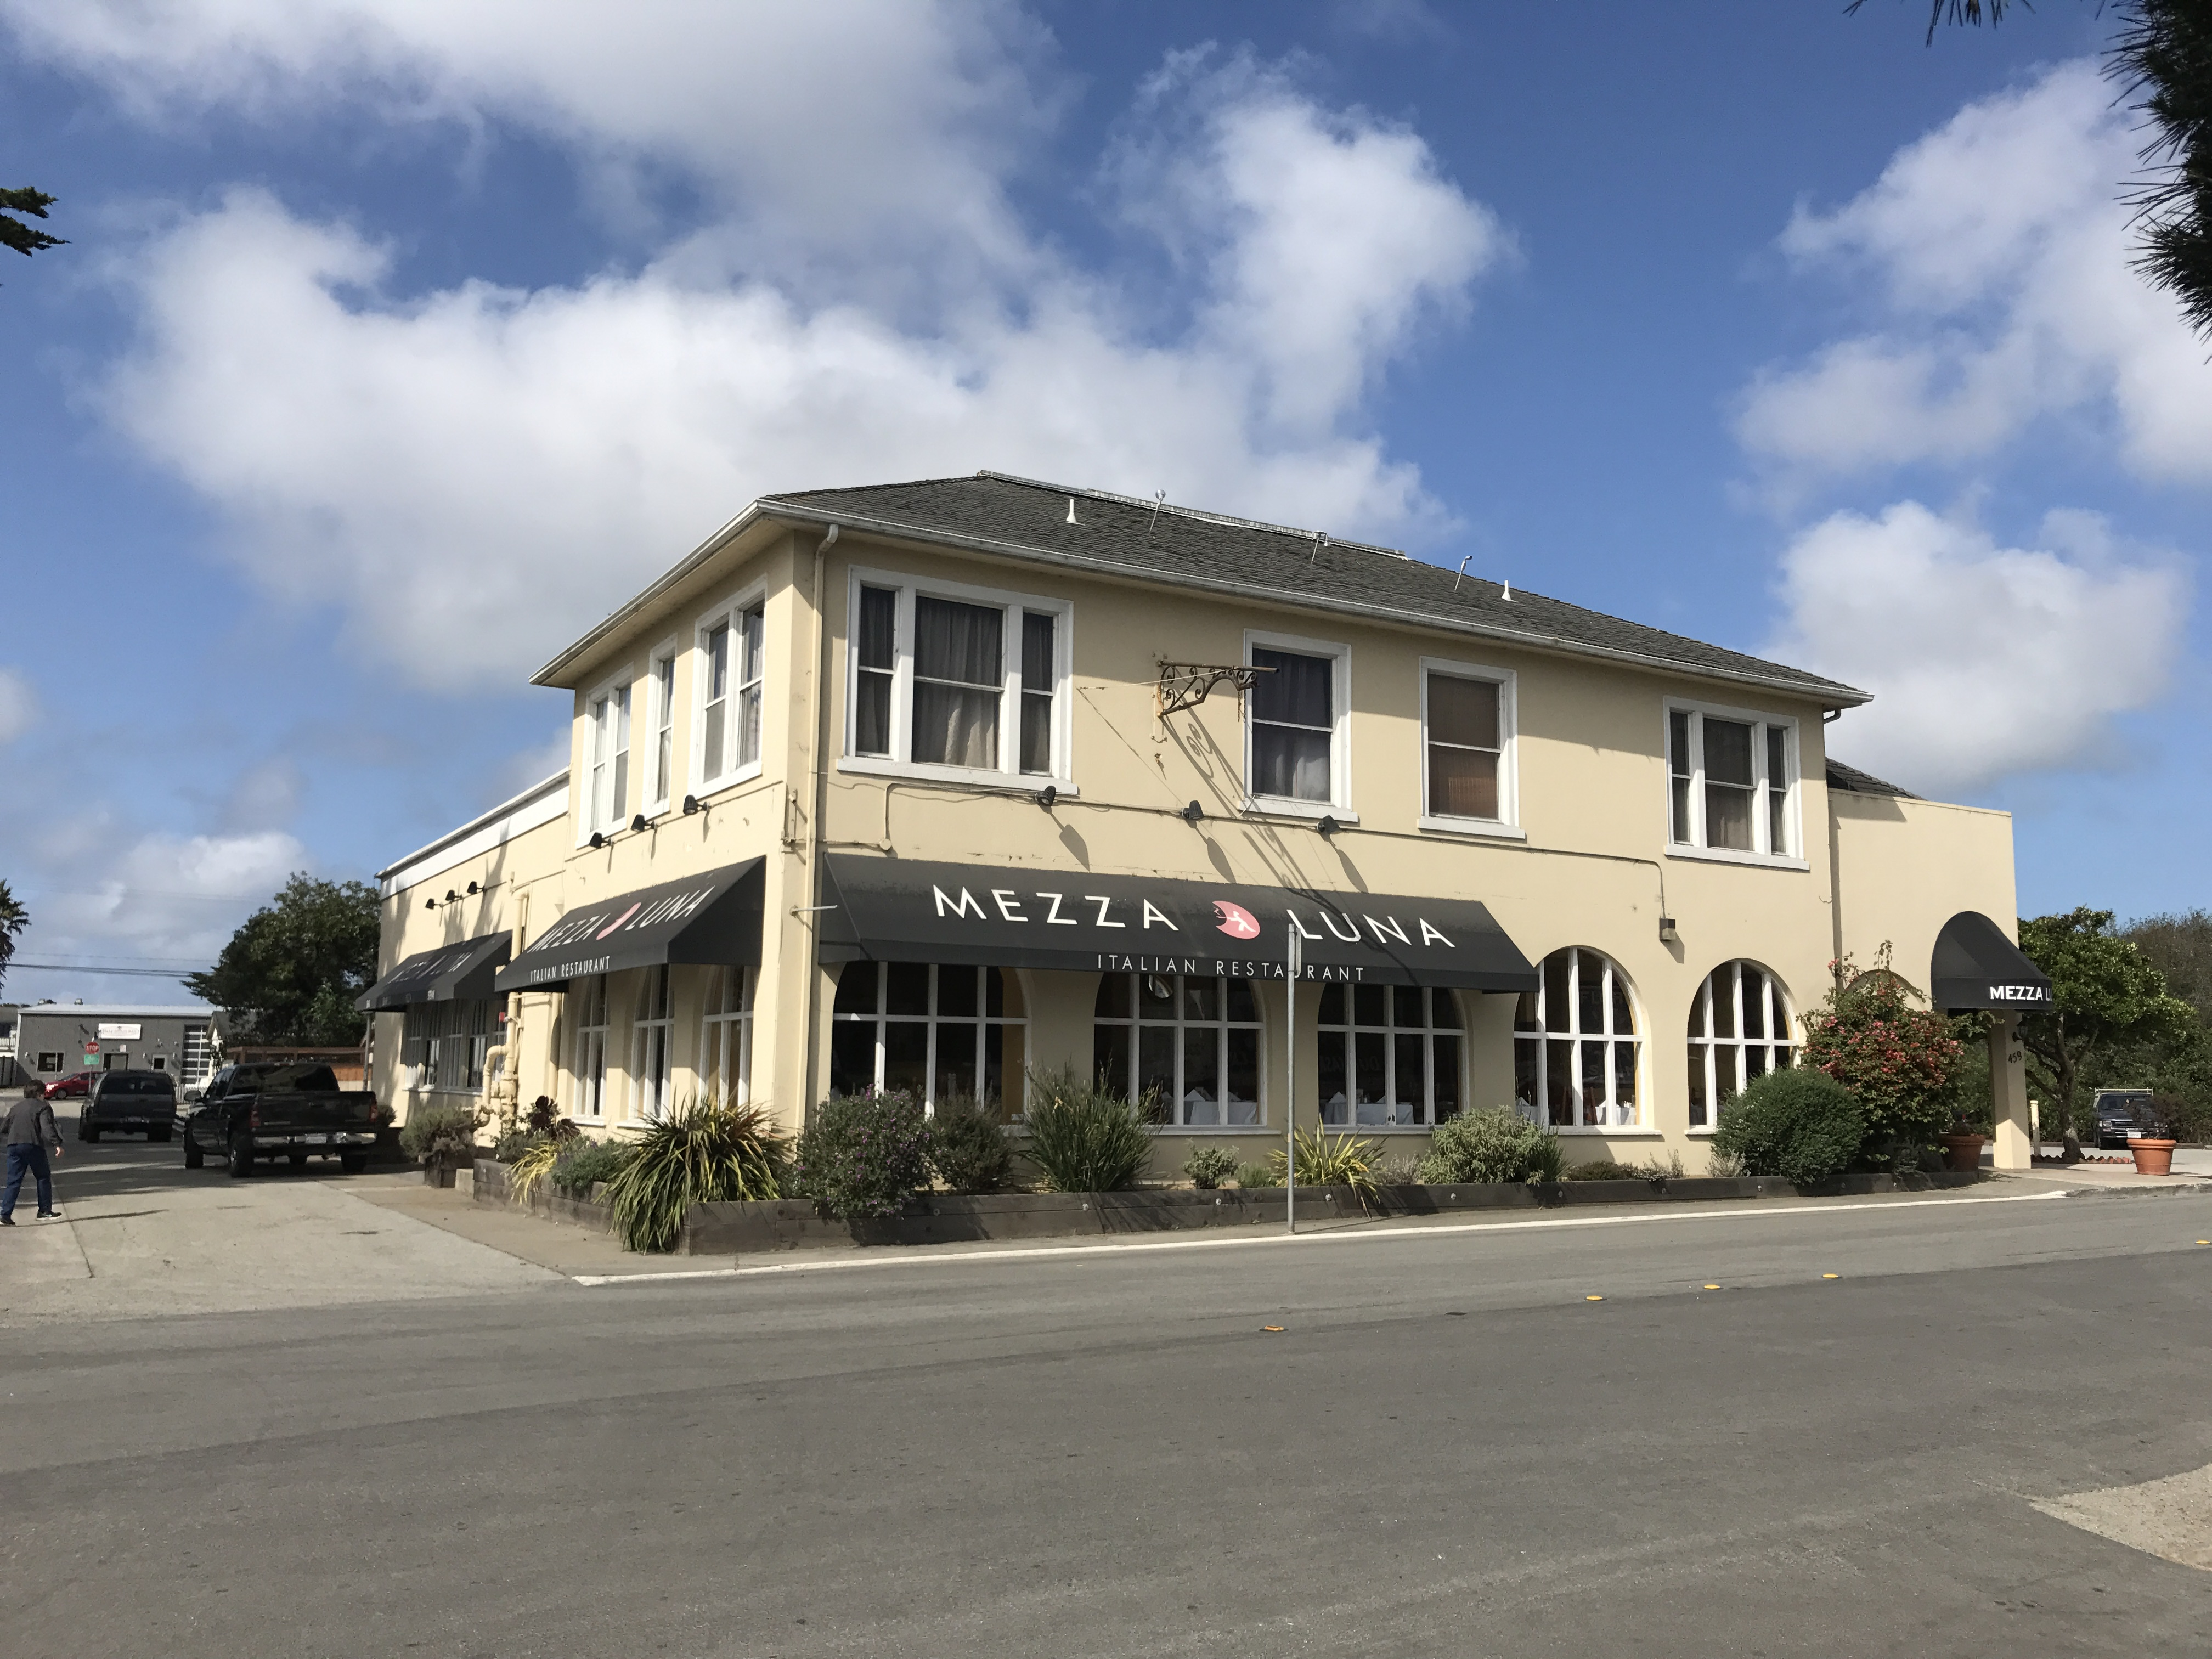 Mezzaluna Princeton Inn by the Sea Historic Half Moon Bay